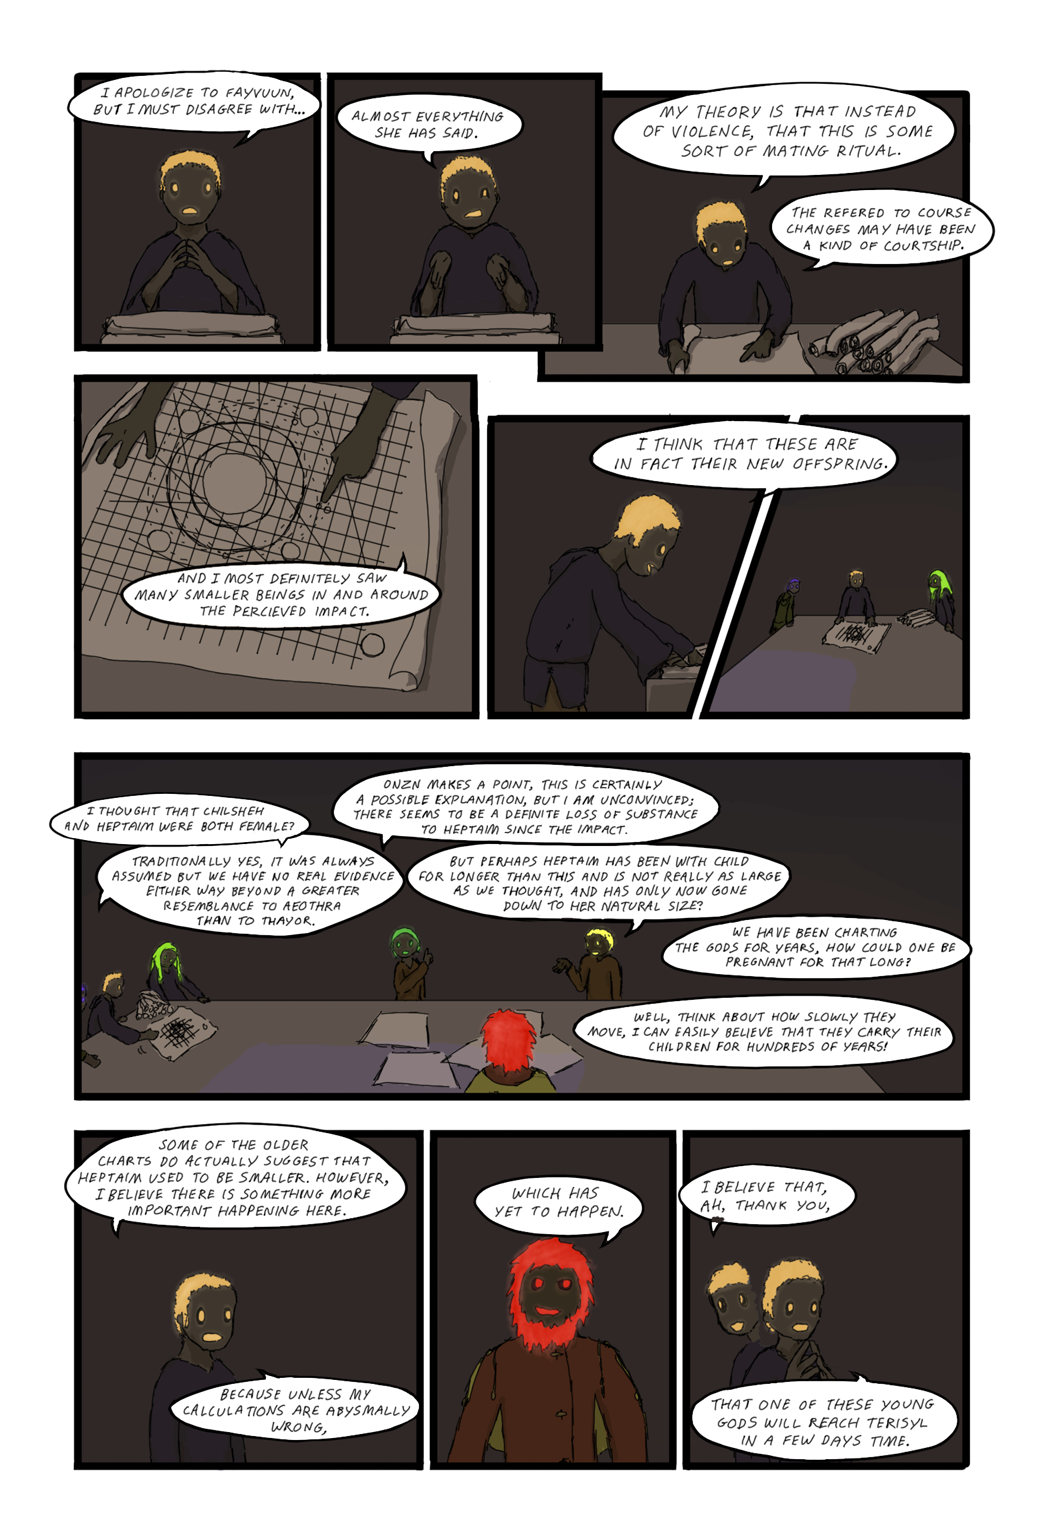 The Great Fireflood Page 6